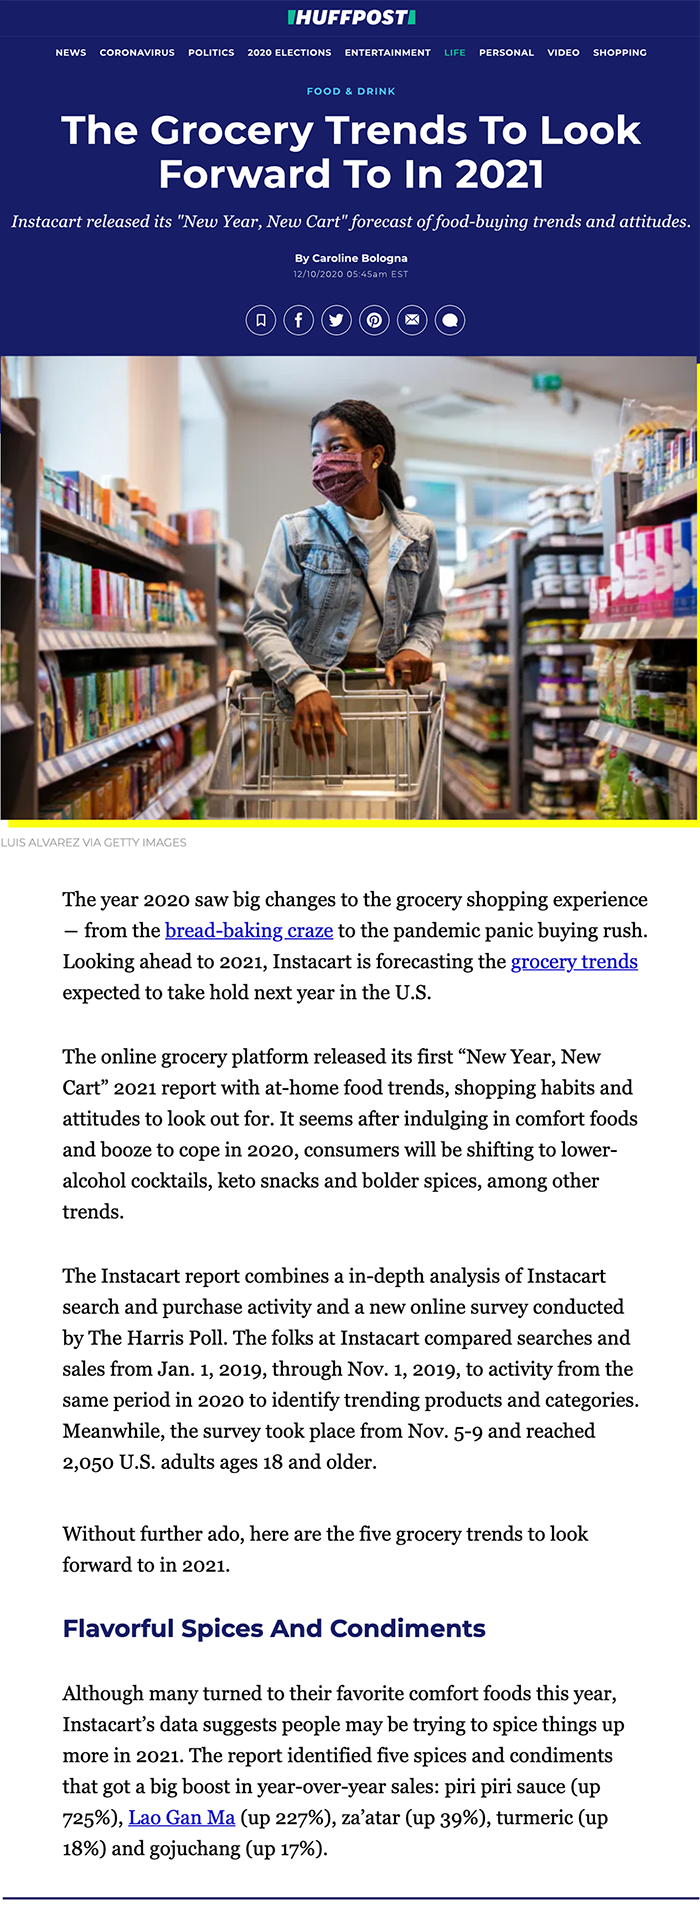 HuffPost - The Grocery Trends To Look Forward To In 2021